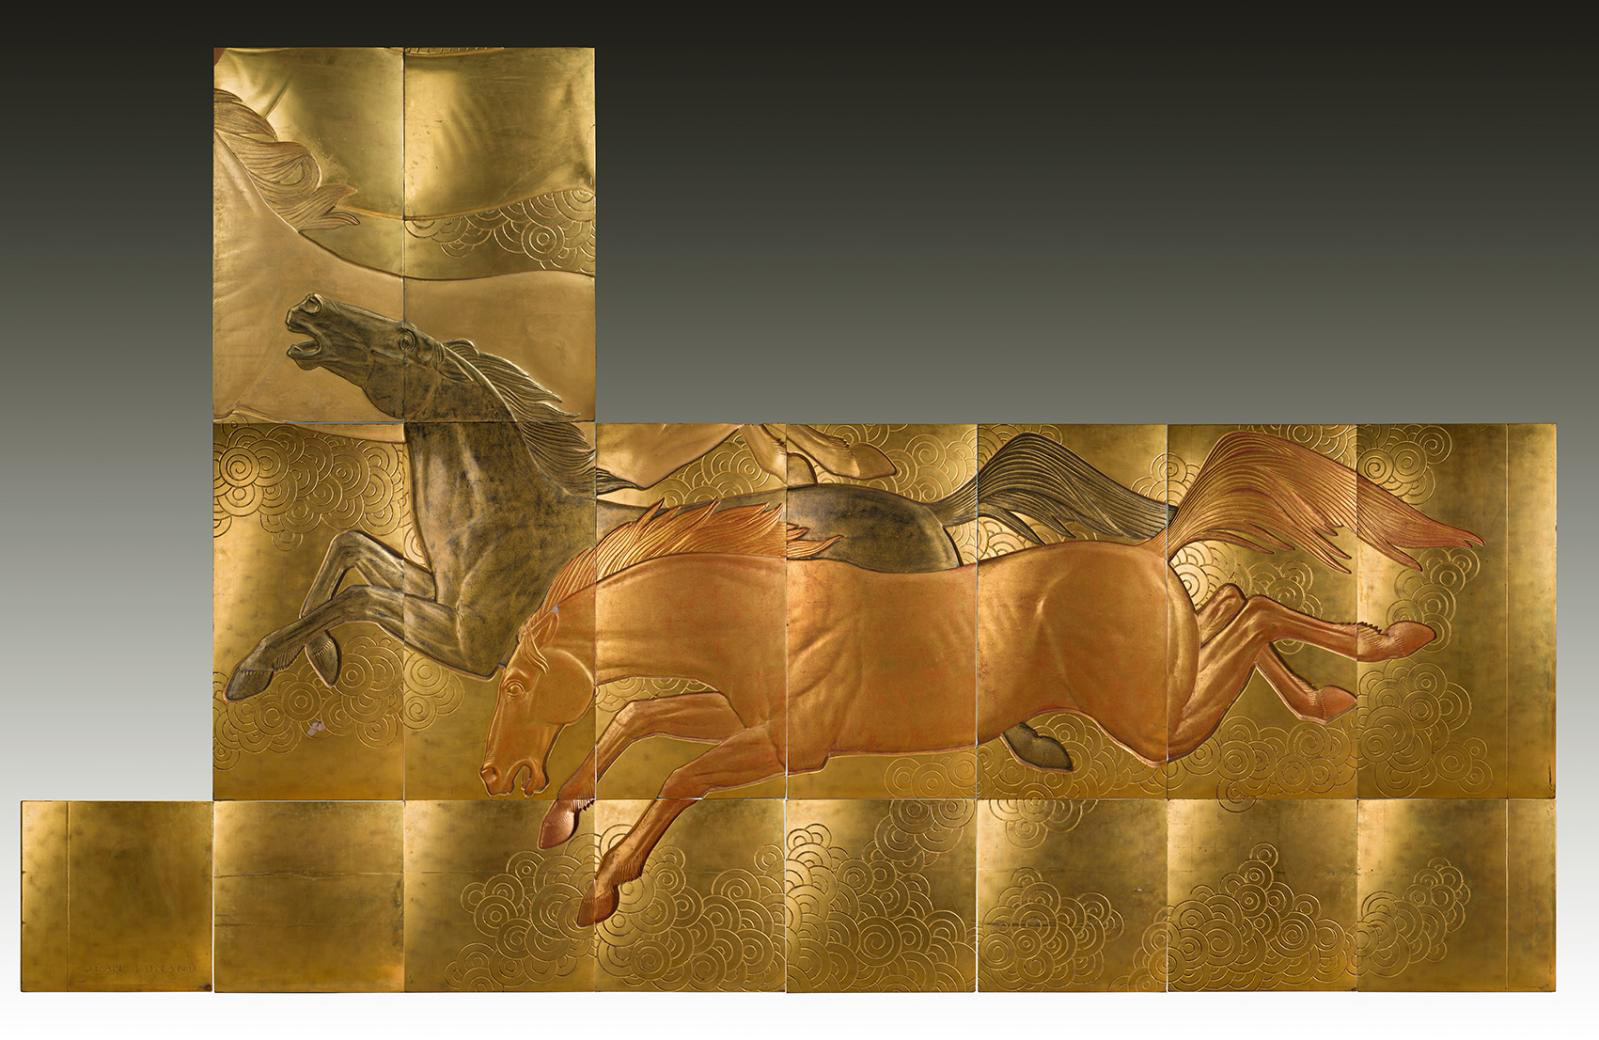 Jean Dunand (1877-1942), La Conquête du cheval, 1935, set of 18 panels in gold and color lacquer carved in low-relief on a base of sabi, for the first-class smoking room of the Normandie. The whole: 311 x 504 cm (approx. 122.4 x 198.4 in) ; separately: 124 x 63 (48.8 x 24.8 in), 63 x 63 (24.8 x 24.8 in), 124 x 16 cm (48.8 x 6.3 in). Estimate: €250,000/300,000